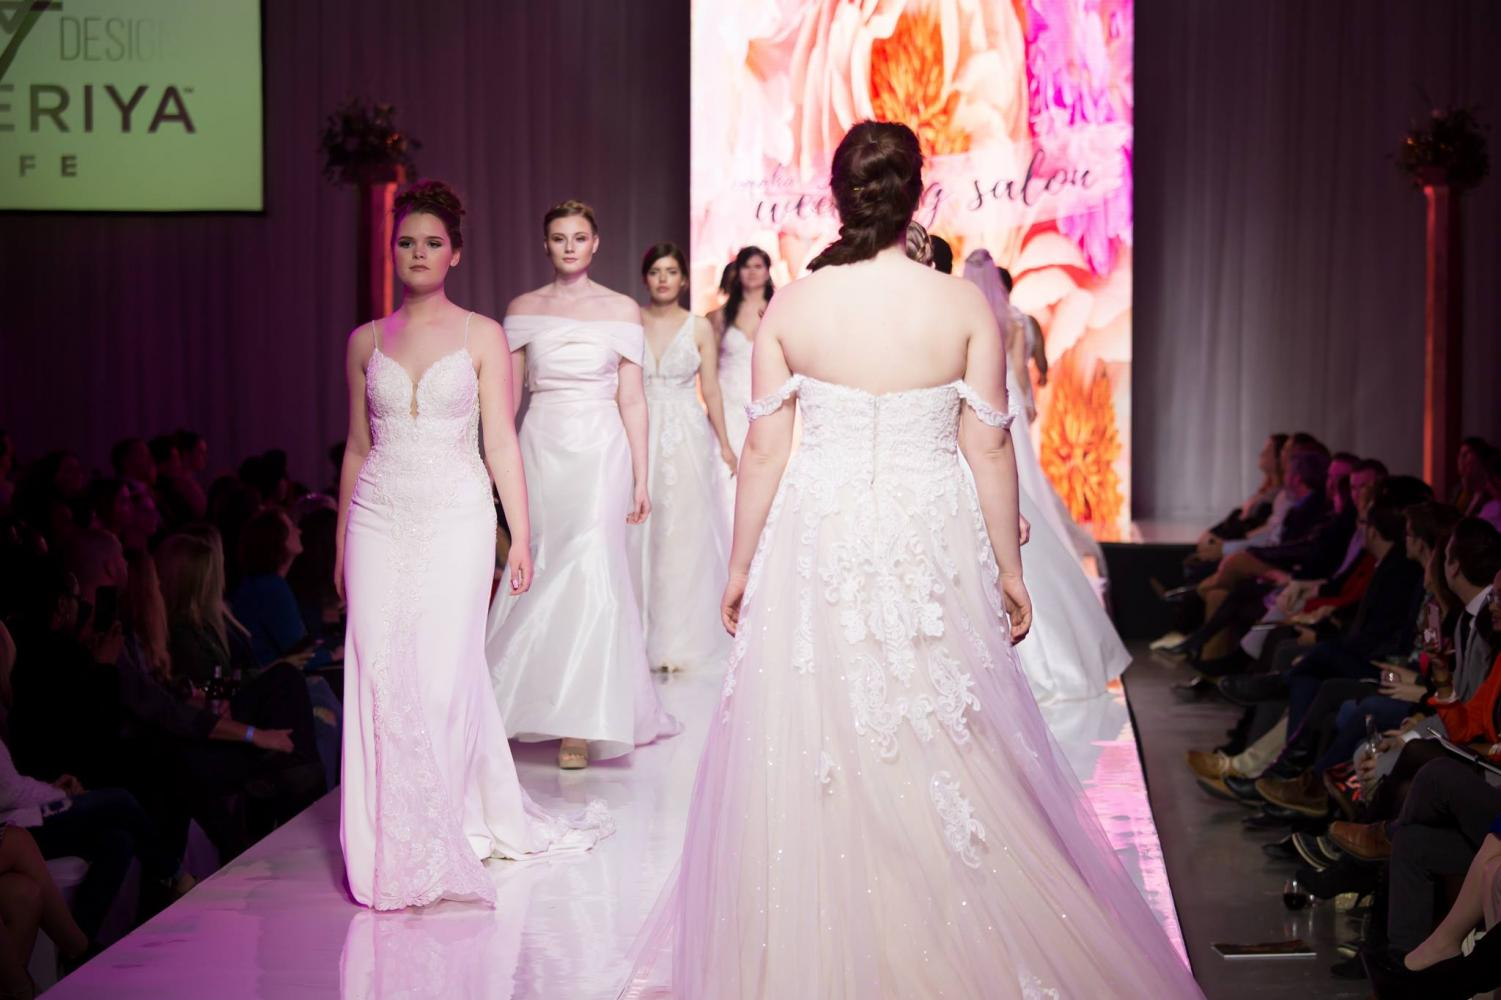 Models walk the runway during Wedding Night on Monday, February 25th in gowns. Photo courtesy of Omaha Fashion Week. Photo by Heather and Jameson.